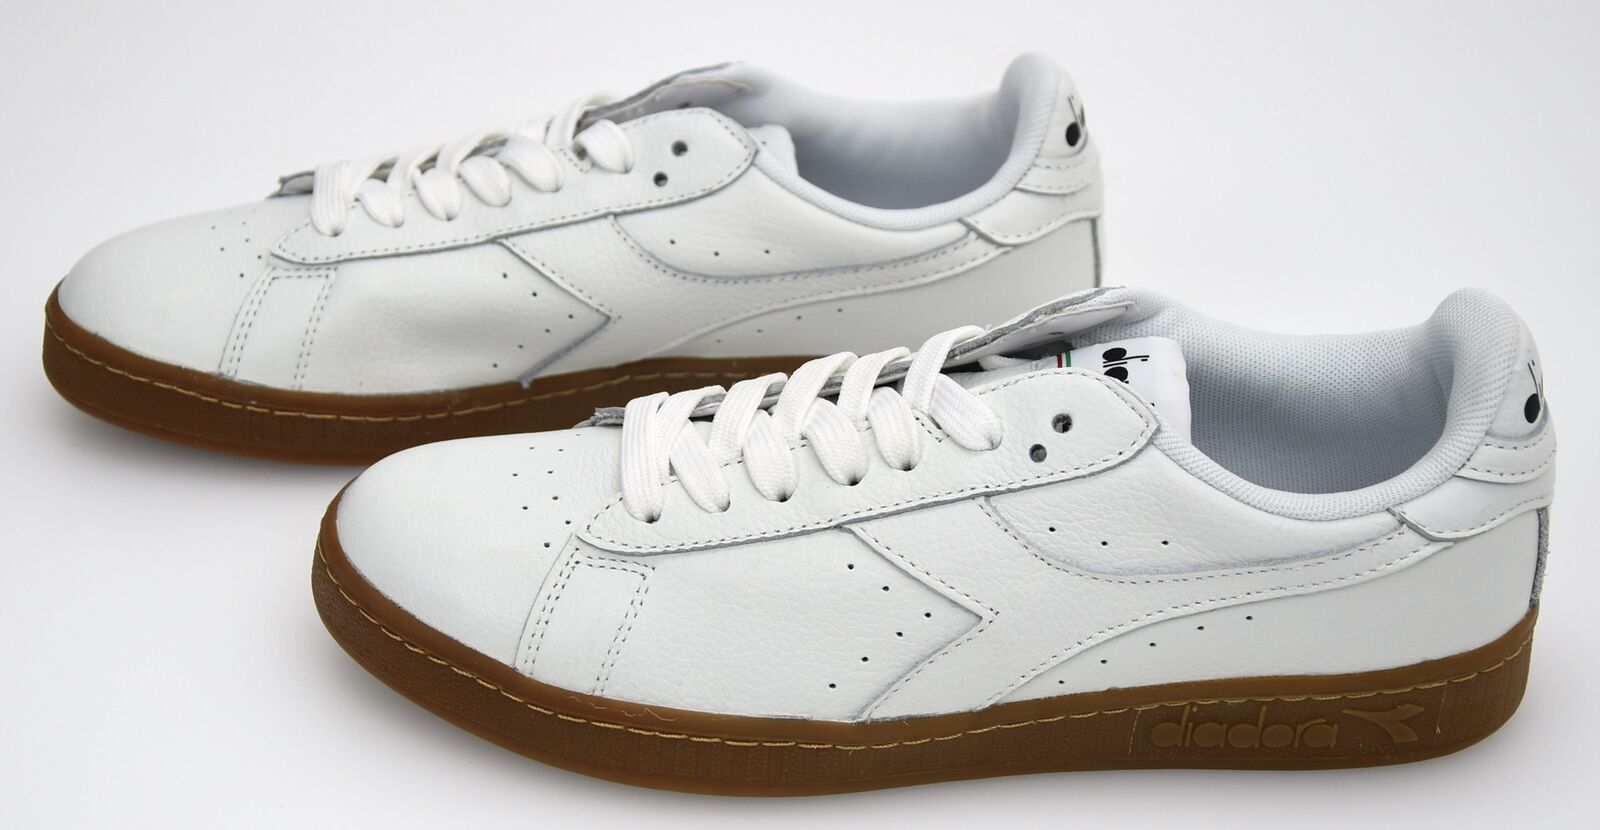 501.160821 01 20006 GAME L LOW WAXED